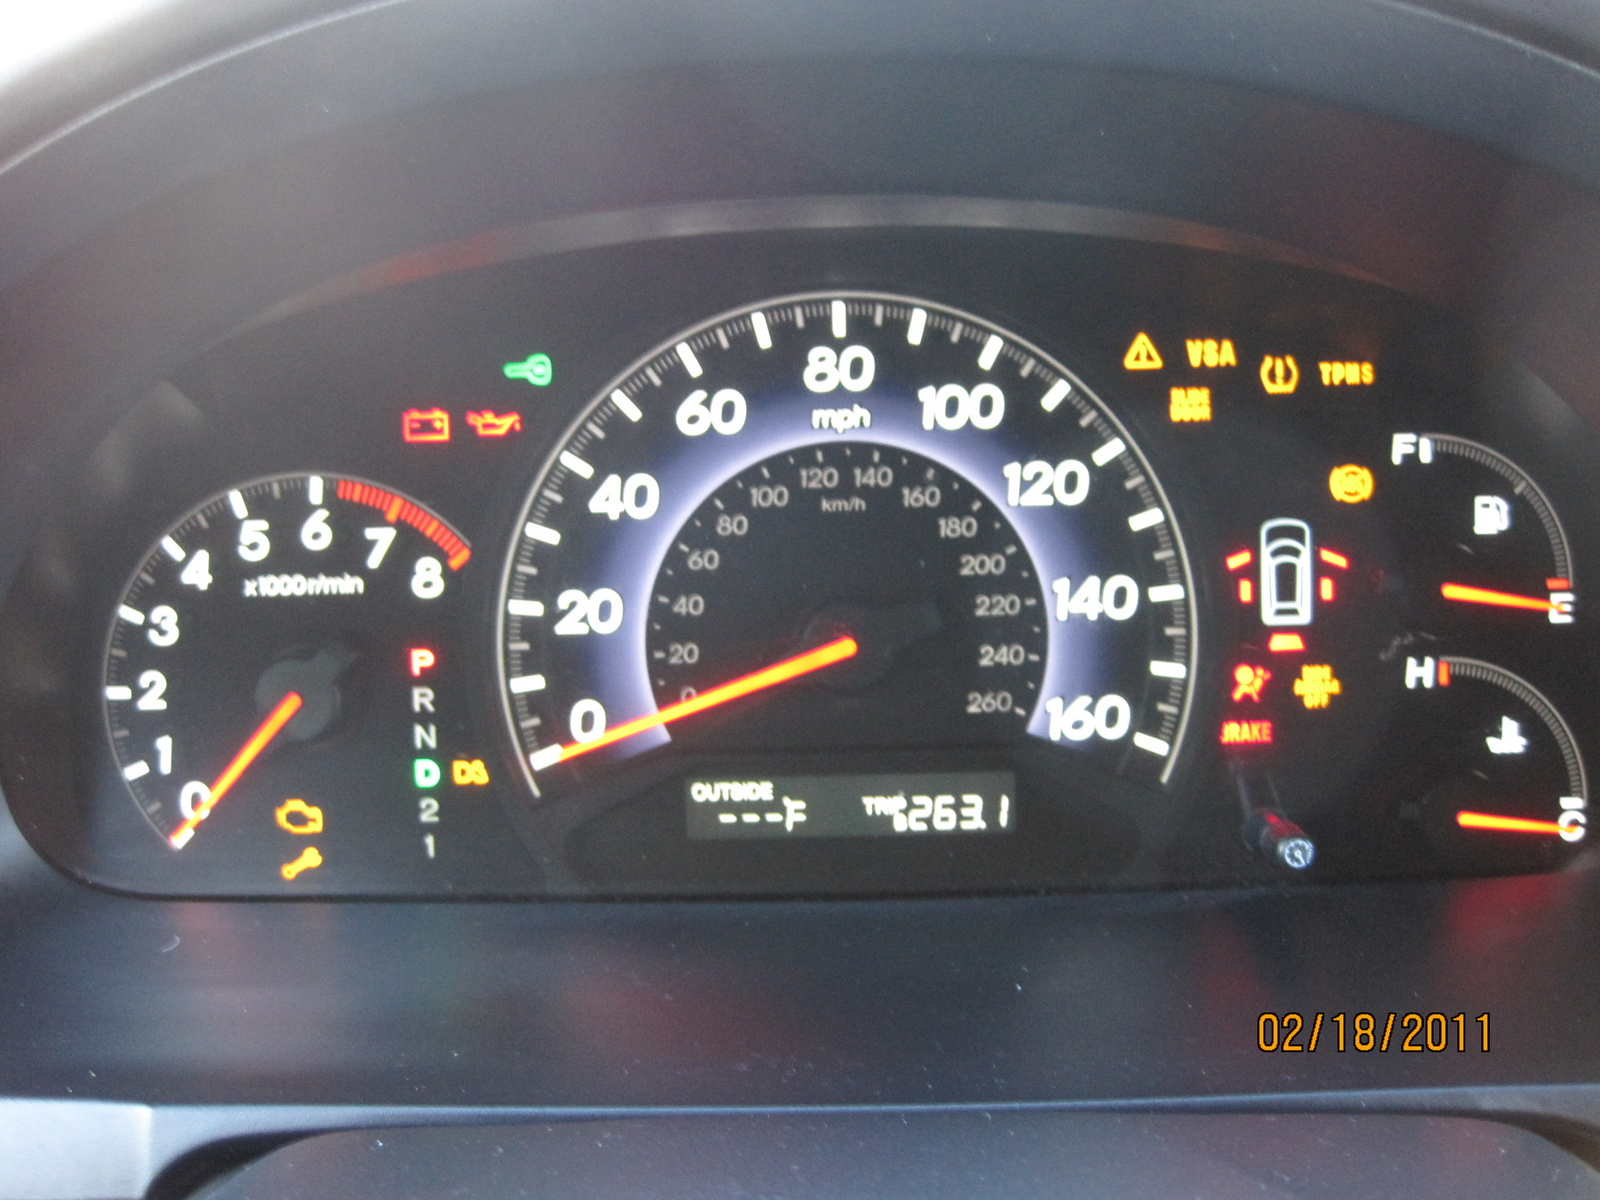 2006 Honda Crv Check Engine Light Vsa | Decoratingspecial.com